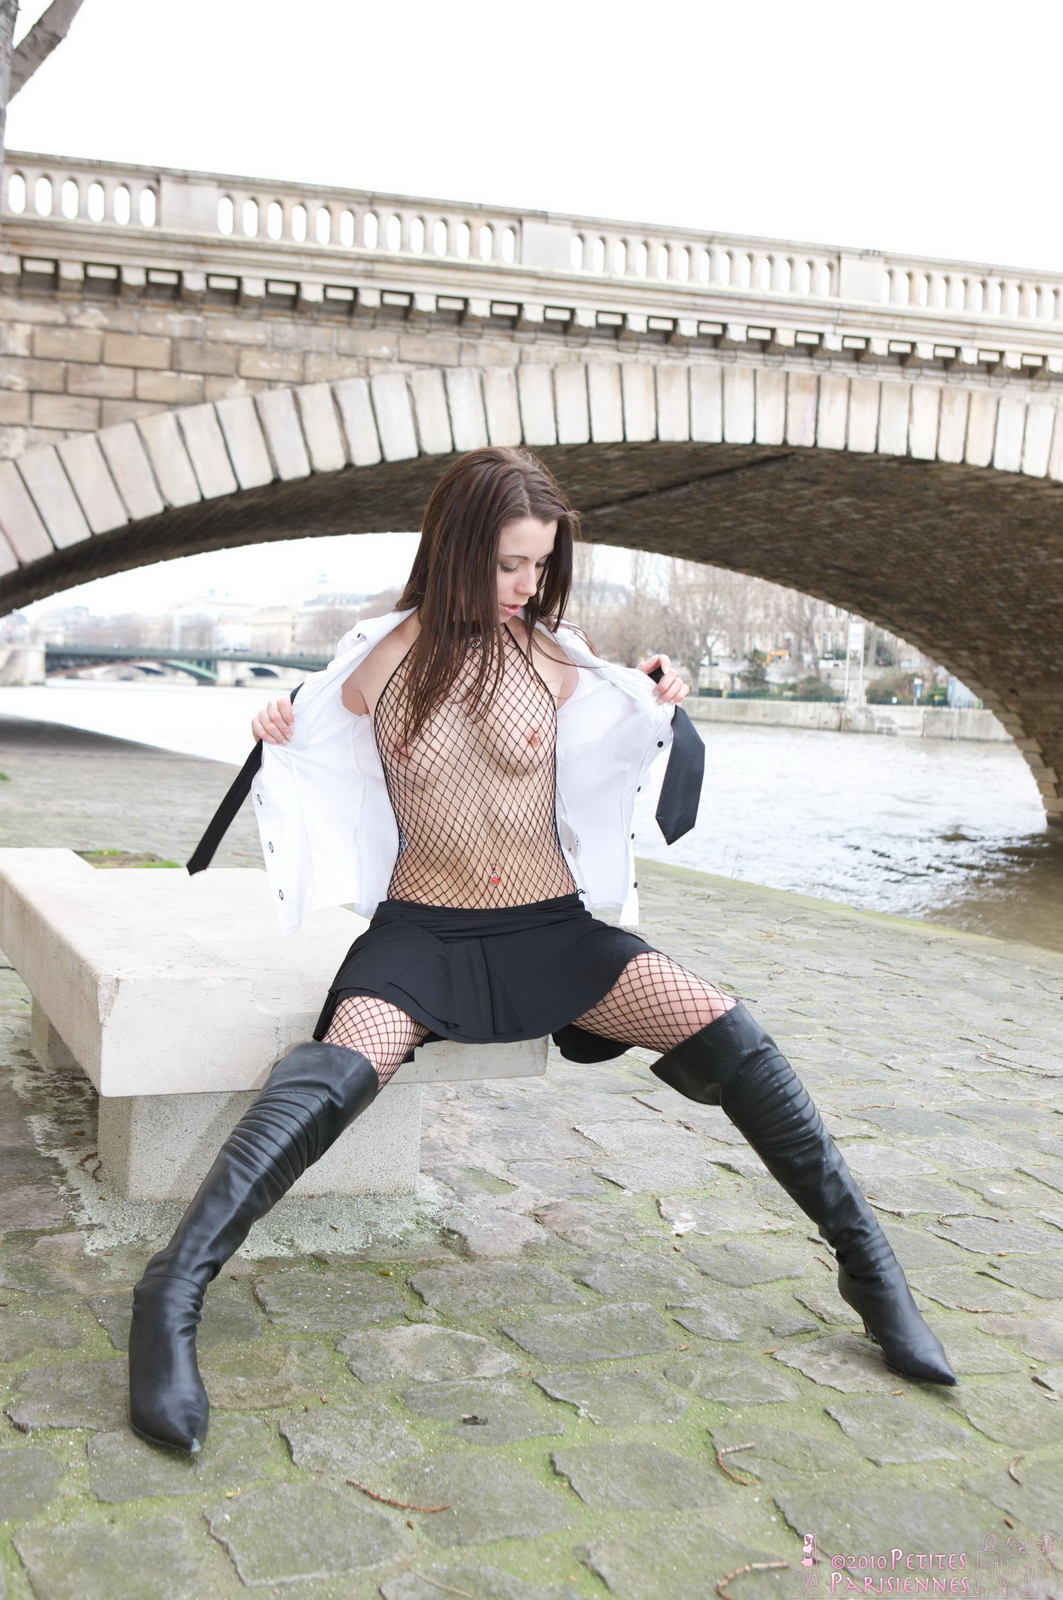 laetitia-fishnet-bodystocking-public-nude-river-petites-parisiennes-11